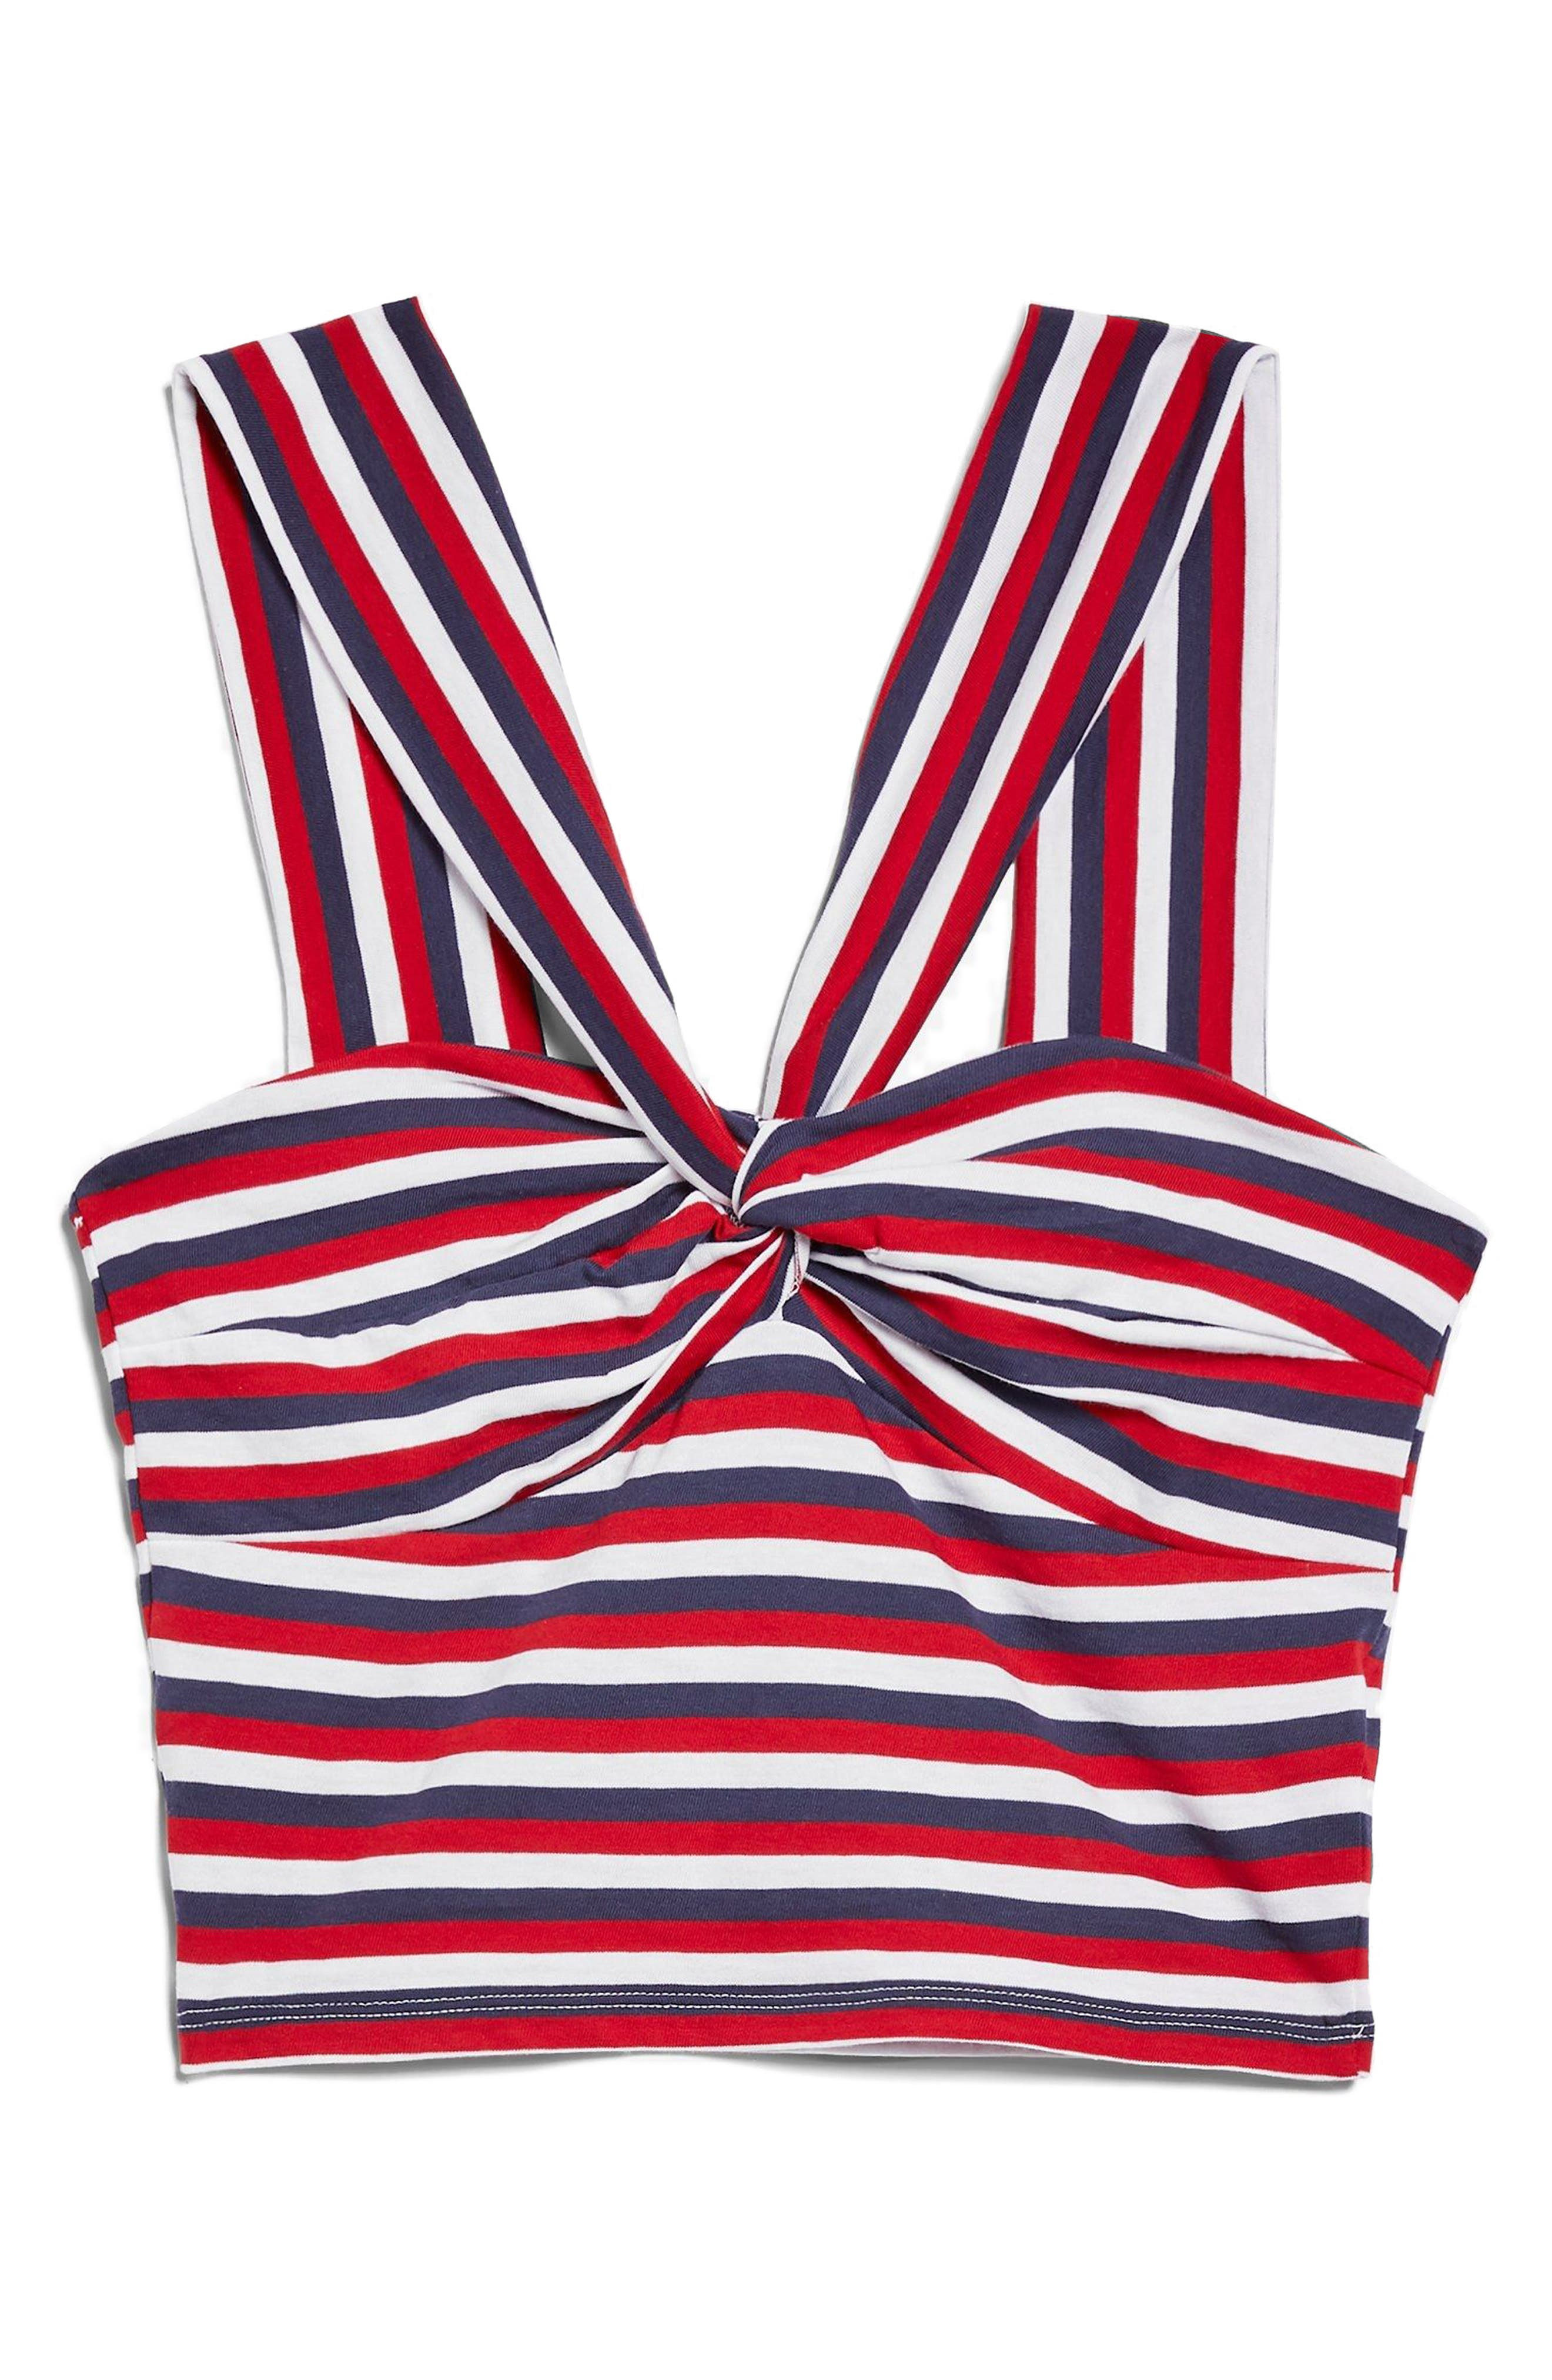 Stripe Knot Crop Top,                             Alternate thumbnail 4, color,                             Red Multi